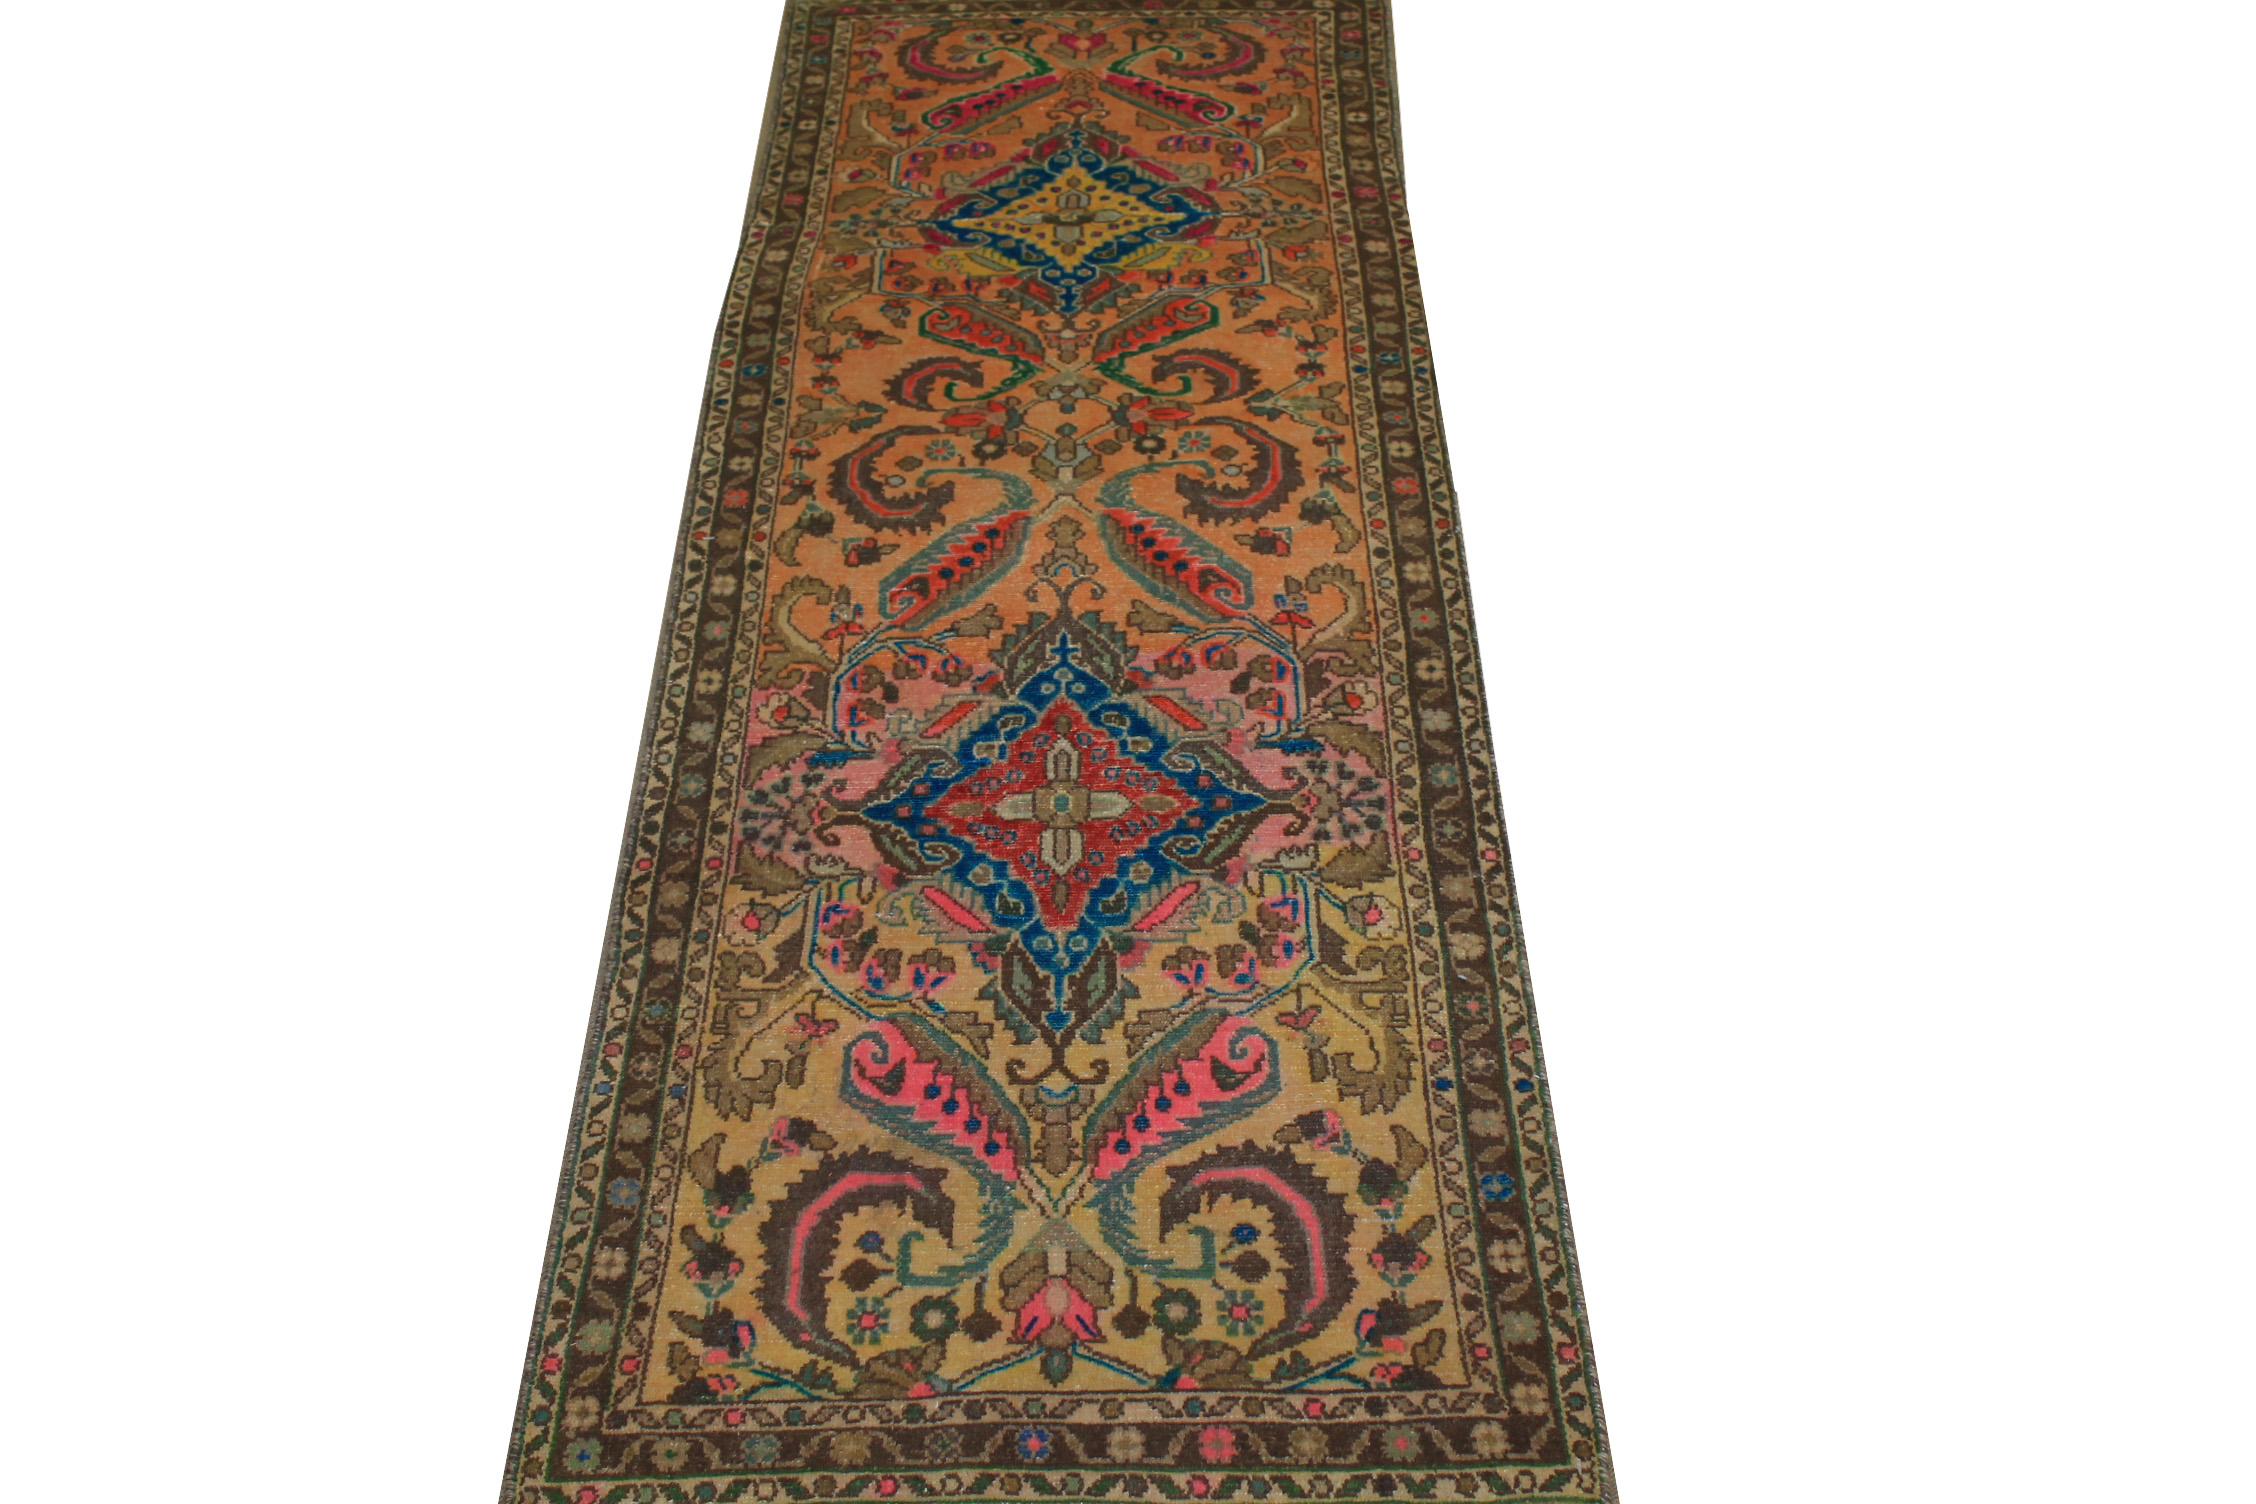 6 ft. Runner Vintage Hand Knotted Wool Area Rug - MR024446